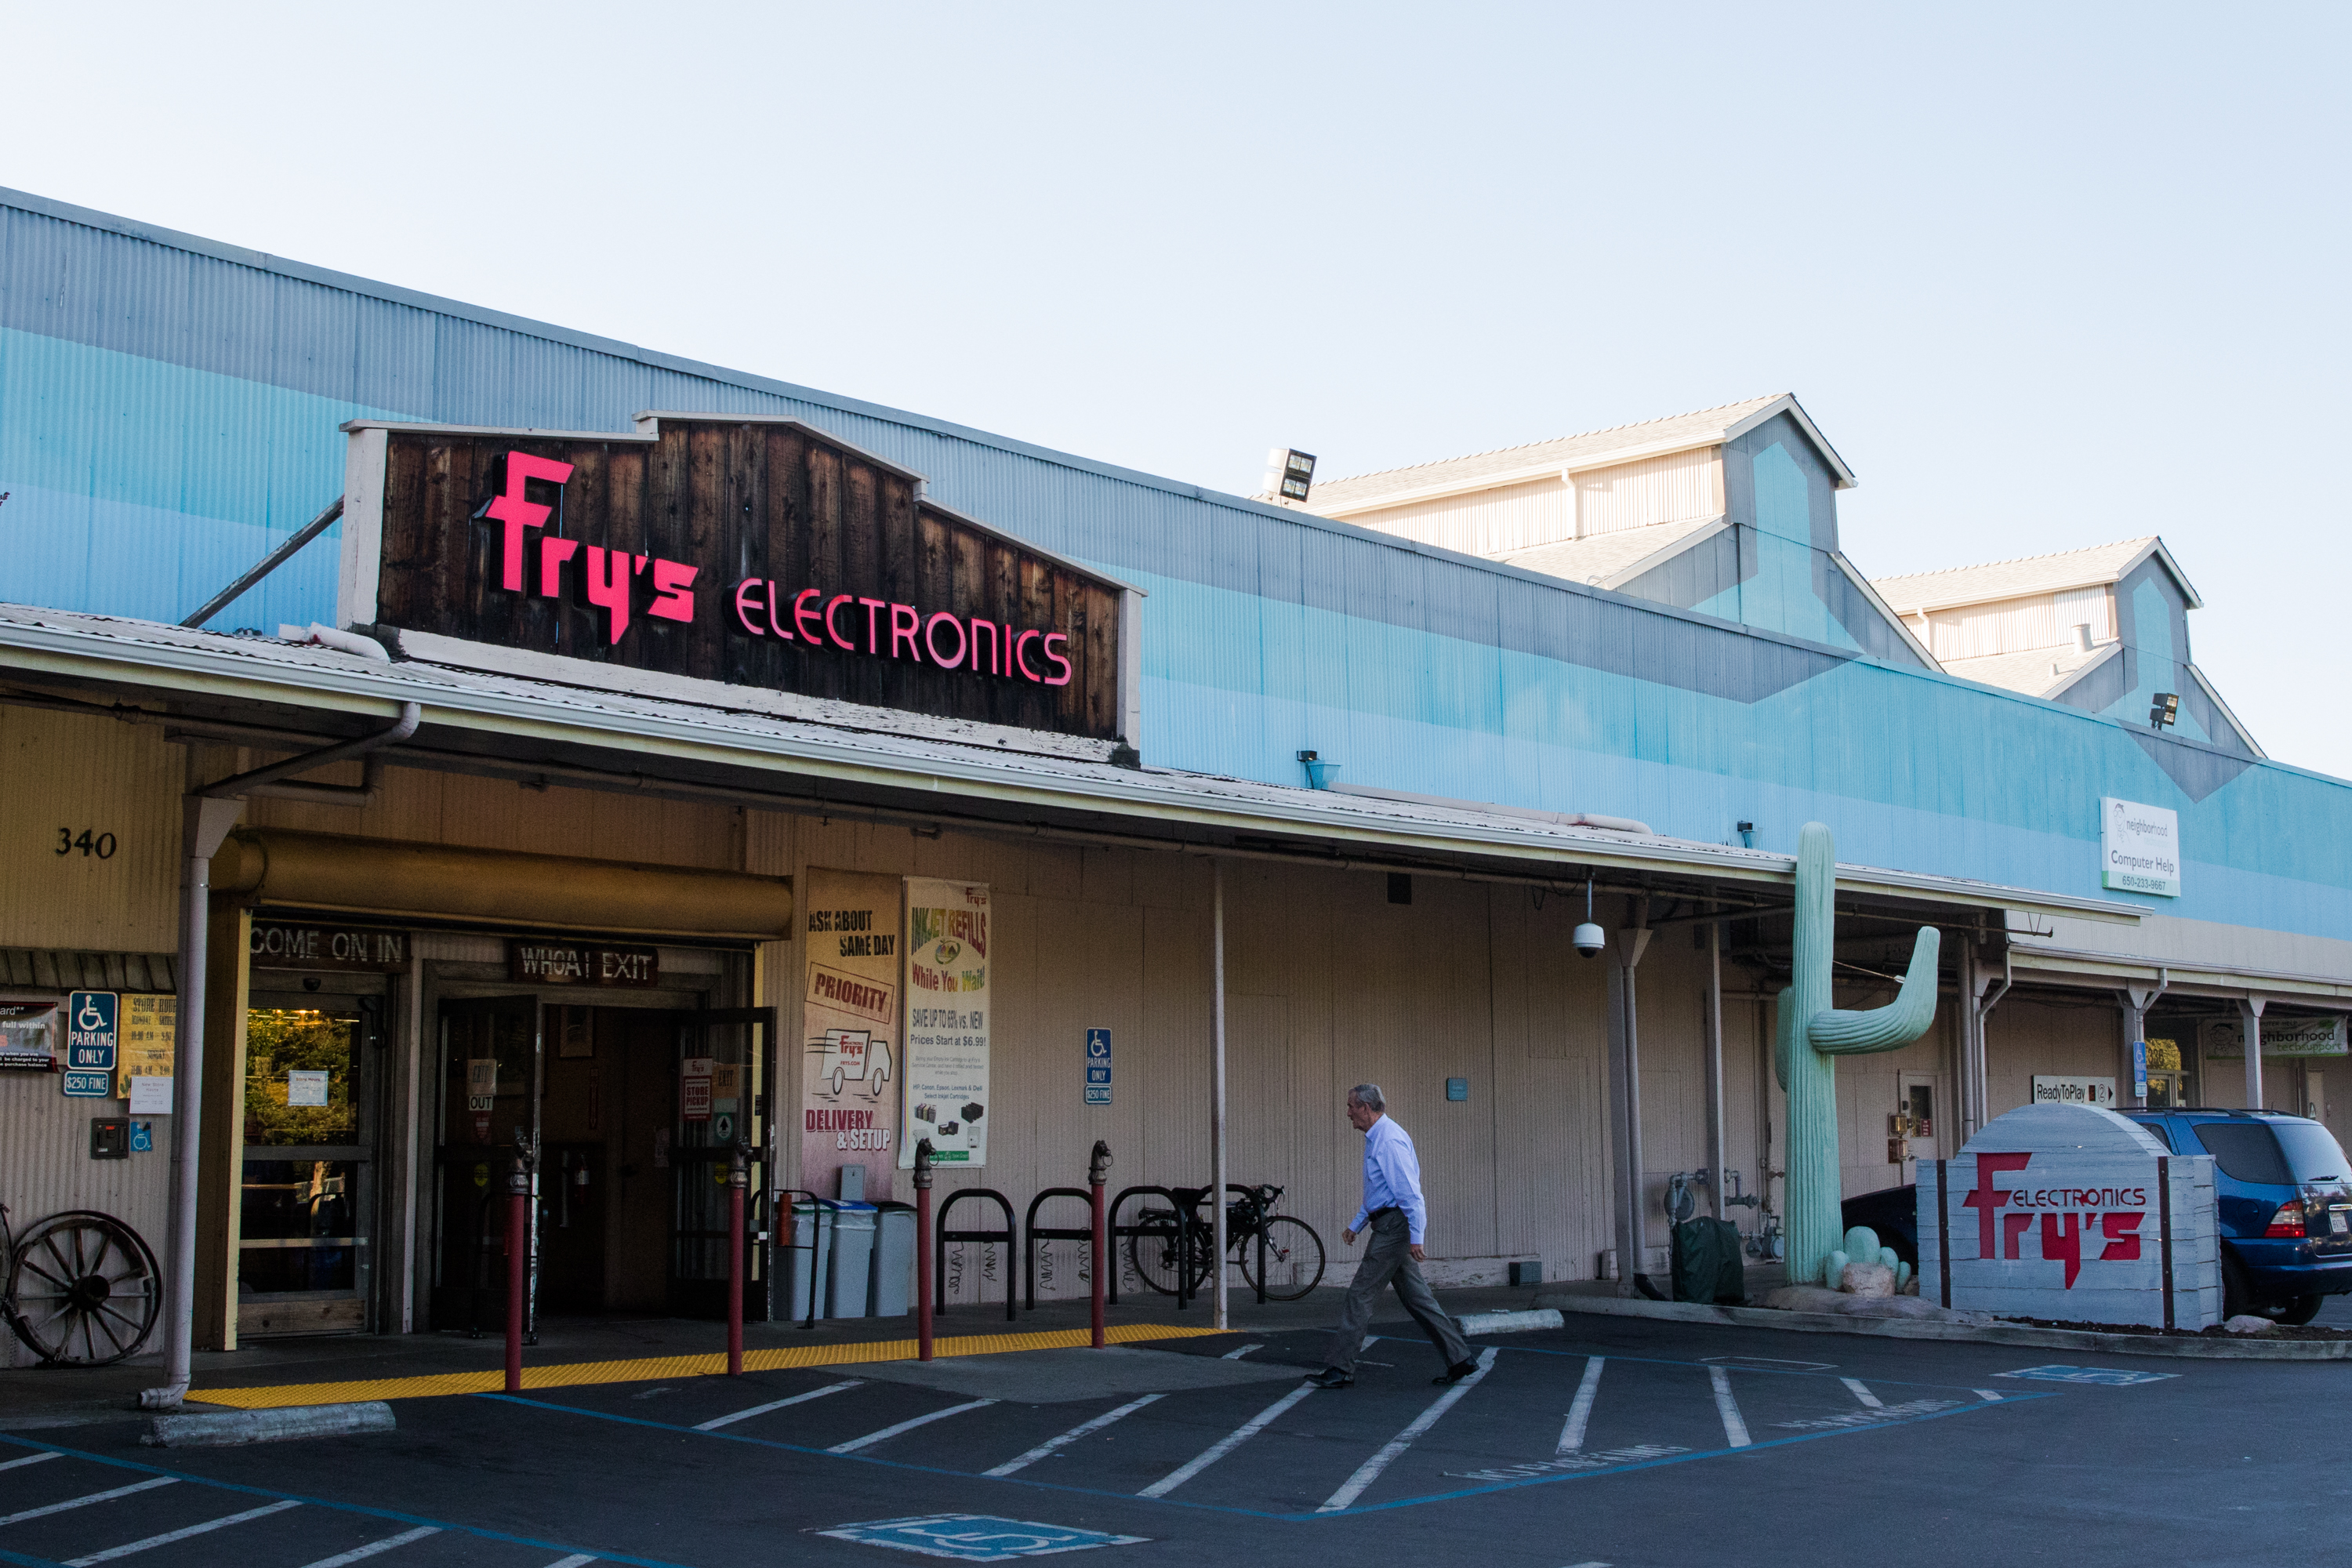 Fry's Electronics at 340 Portage Ave., which is set to close in January 2020, was once used for canning and is now considered a historic building in Palo Alto. Photo by Veronica Weber.